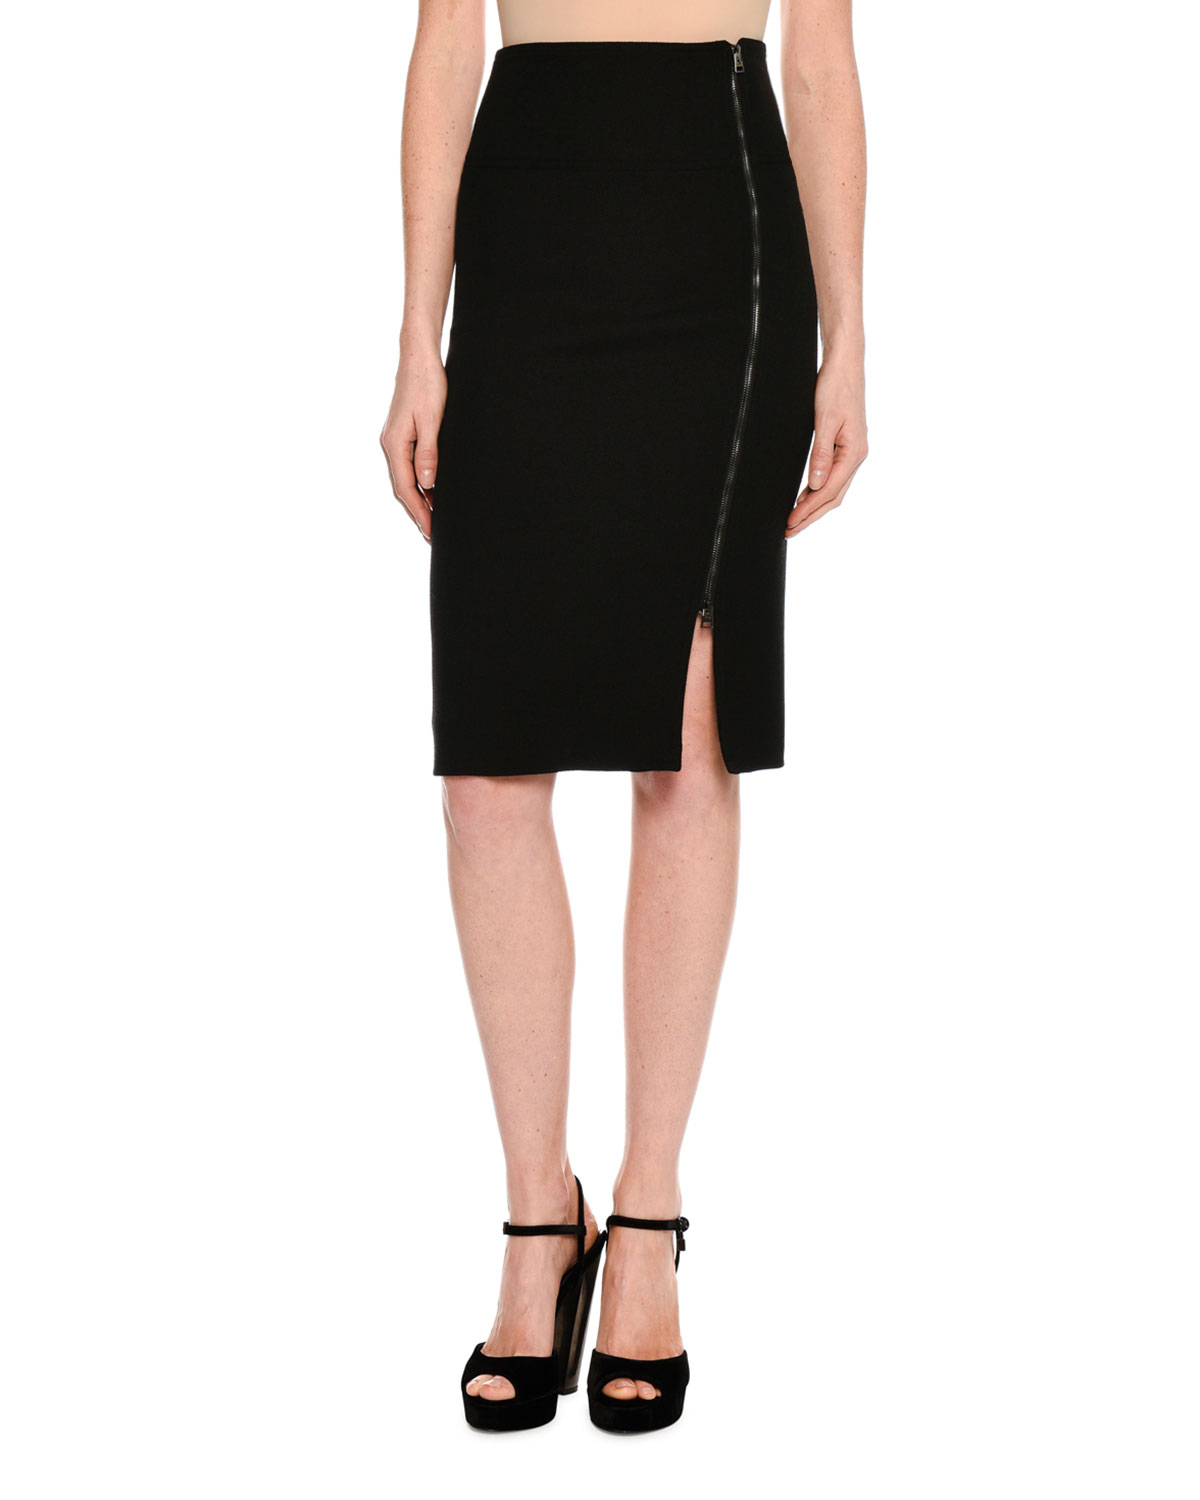 50fe493a54cfb1 Quick Look. TOM FORD · Side-Zip Fitted Pencil Skirt. Available in Black